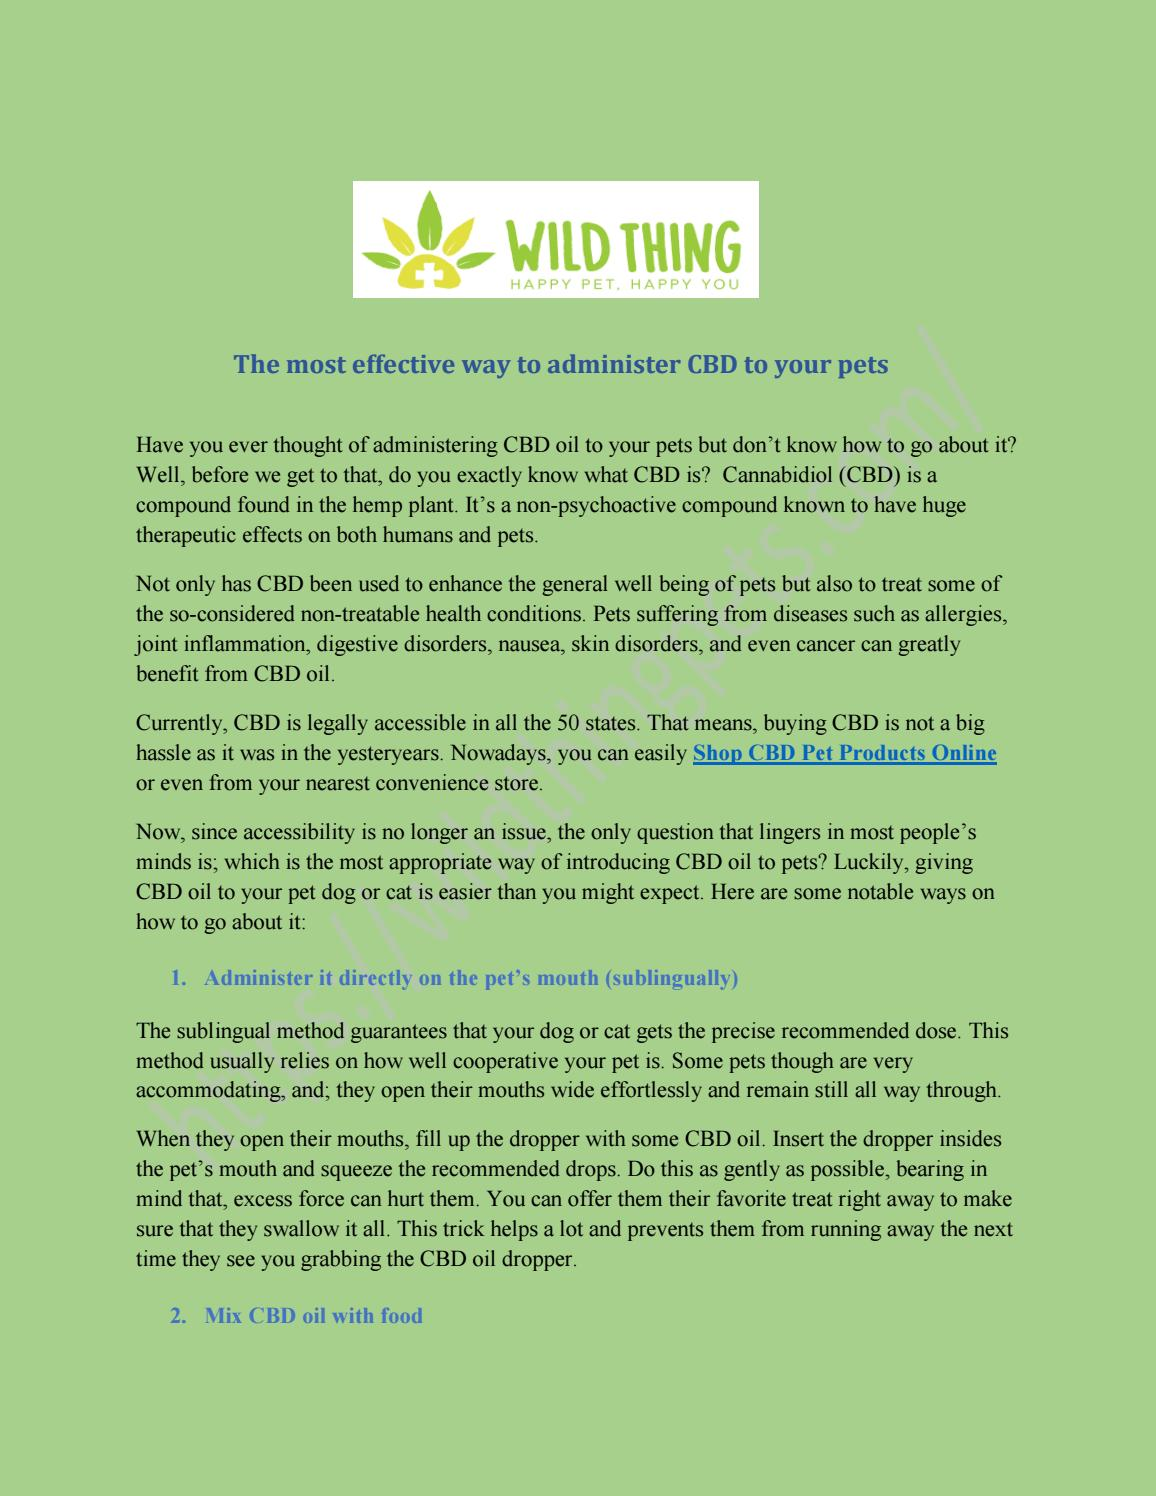 The most effective way to administer CBD to your pets by